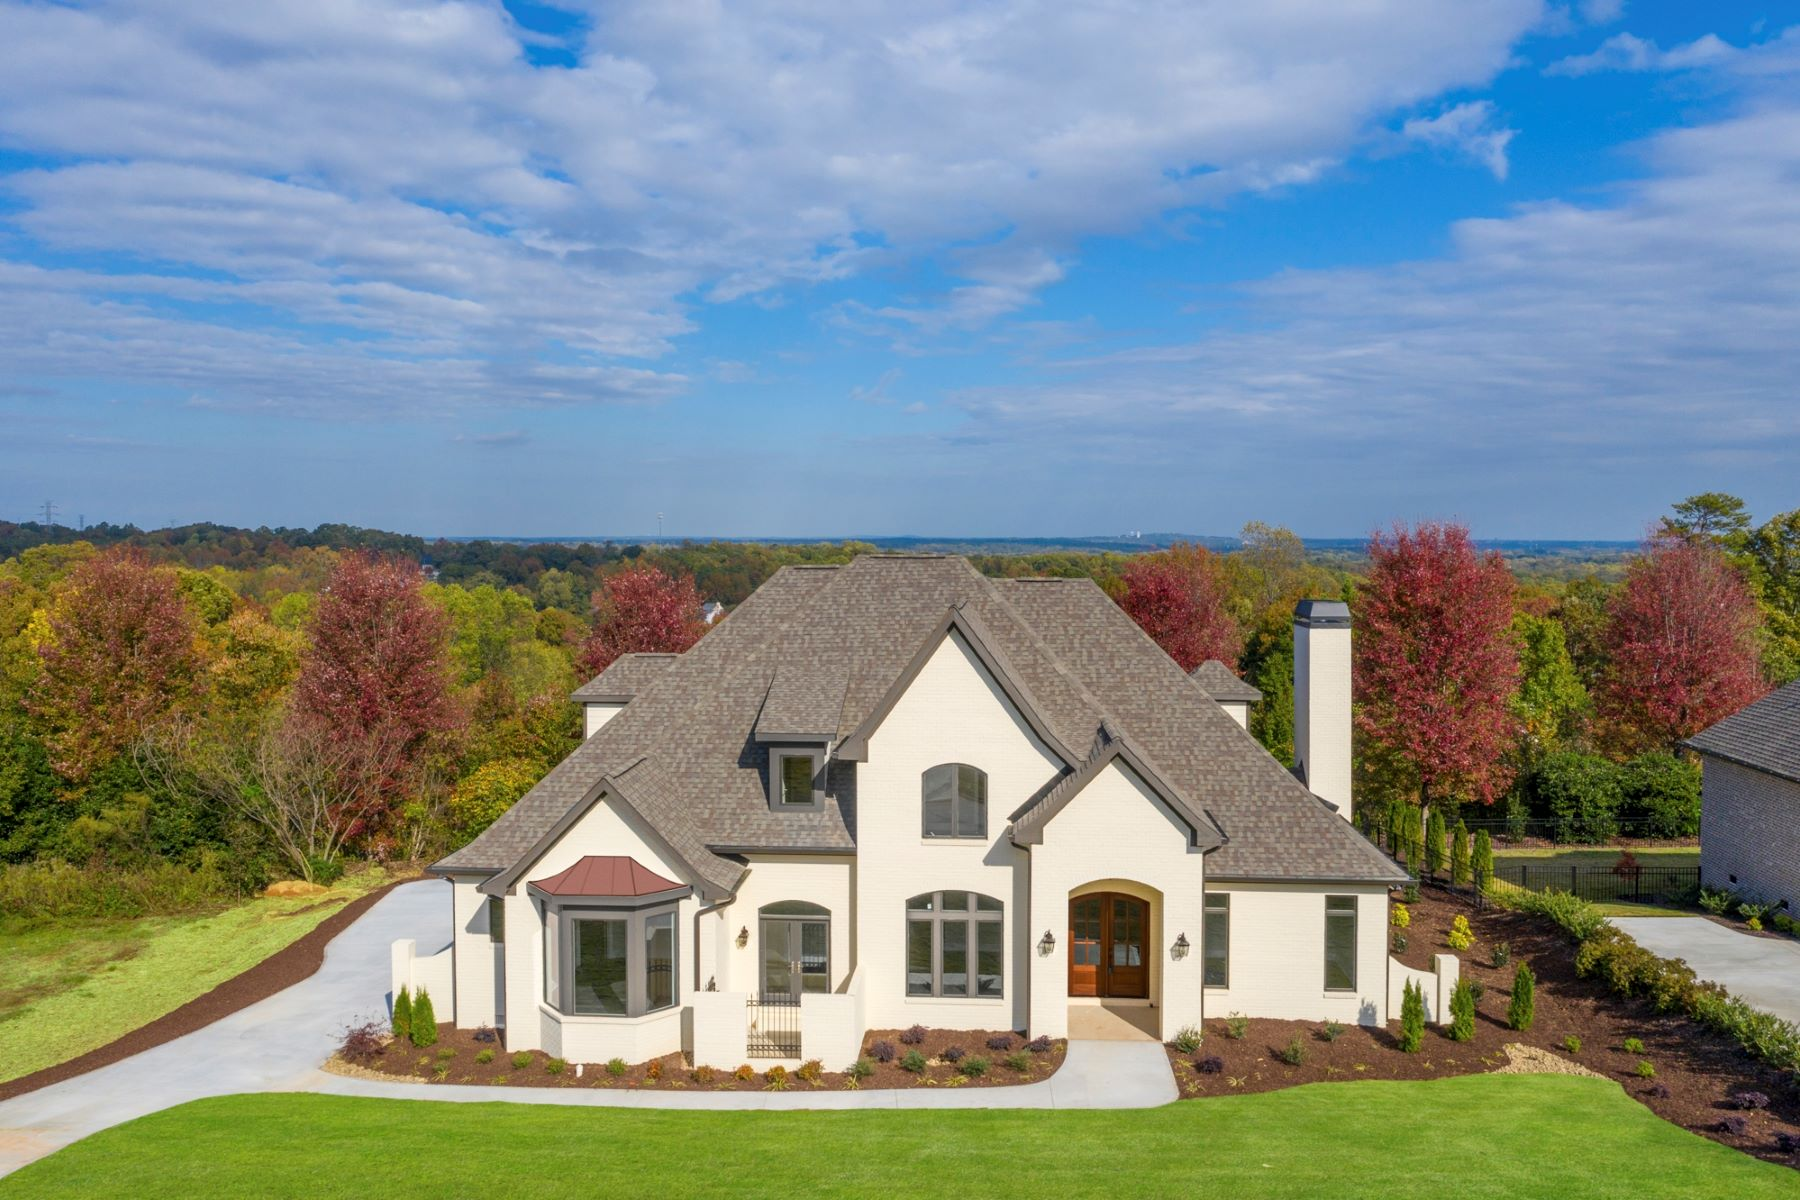 Single Family Homes for Active at Brand new home in gated Promenade section of Montebello 125 Gascony Drive Greenville, South Carolina 29609 United States